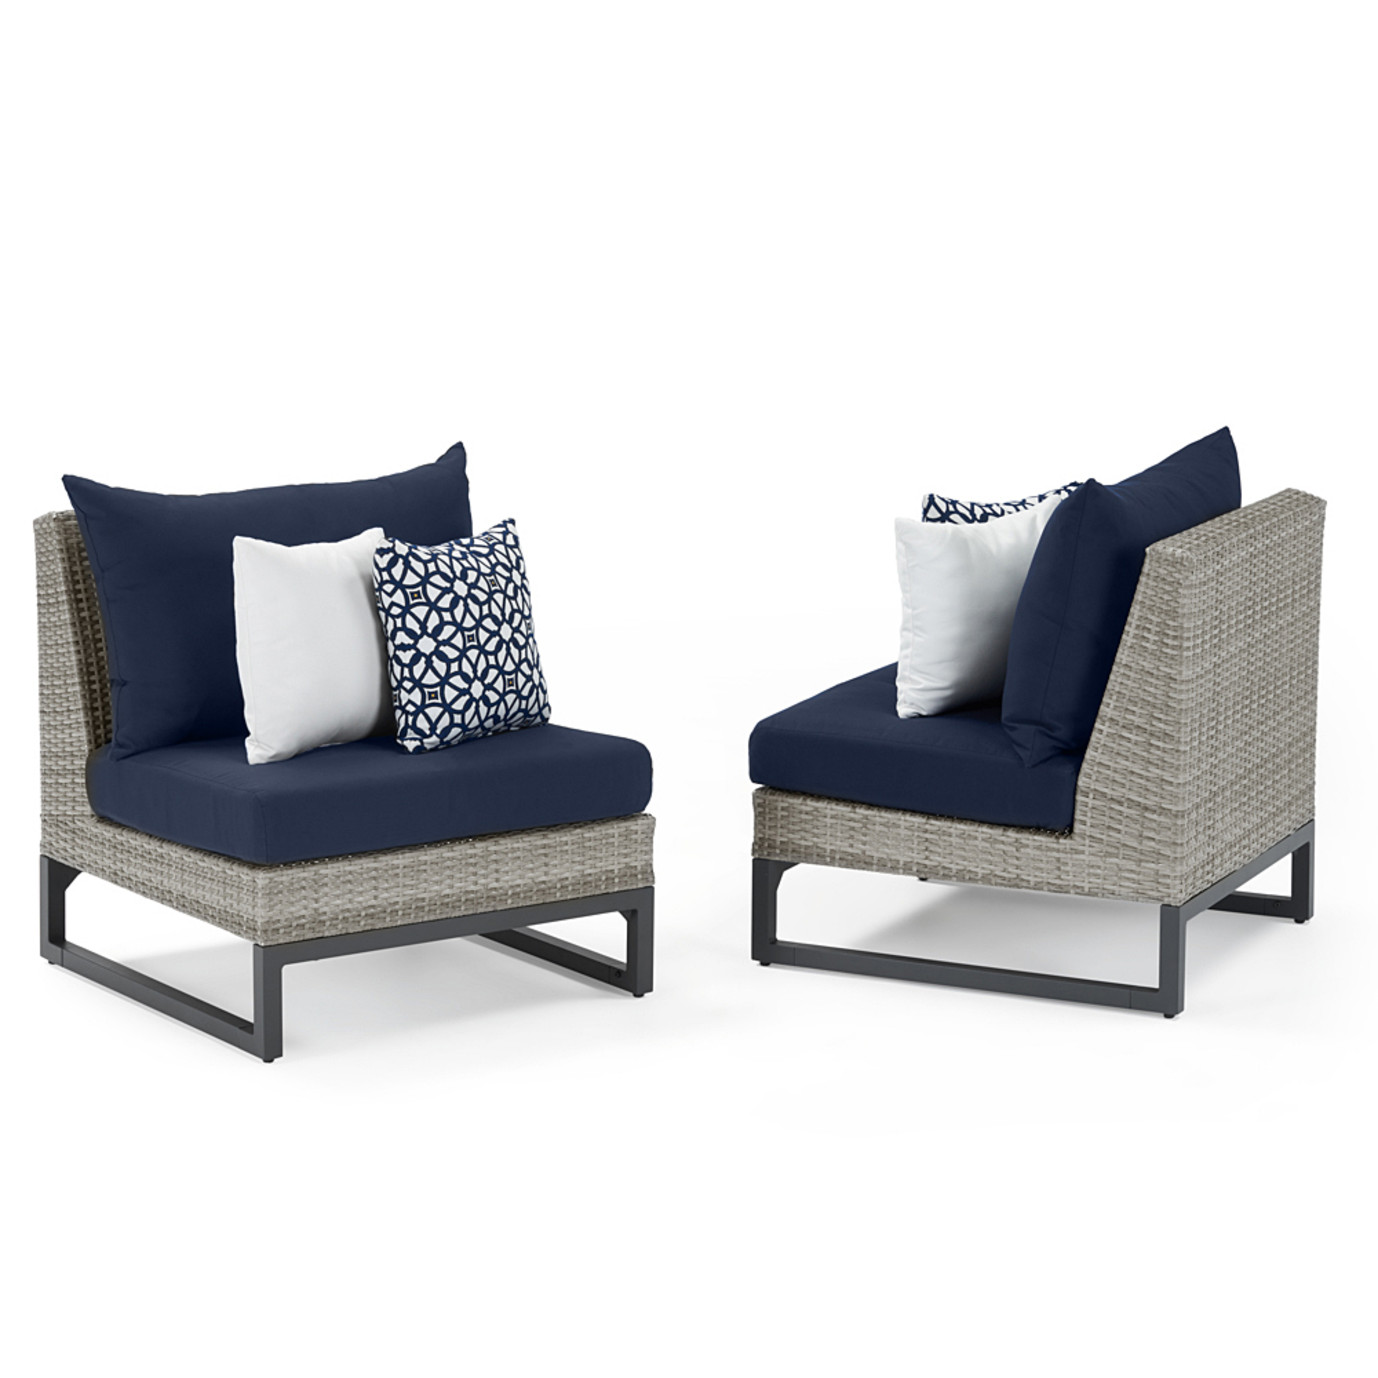 Milo Gray 6 Piece Sectional - Navy Blue